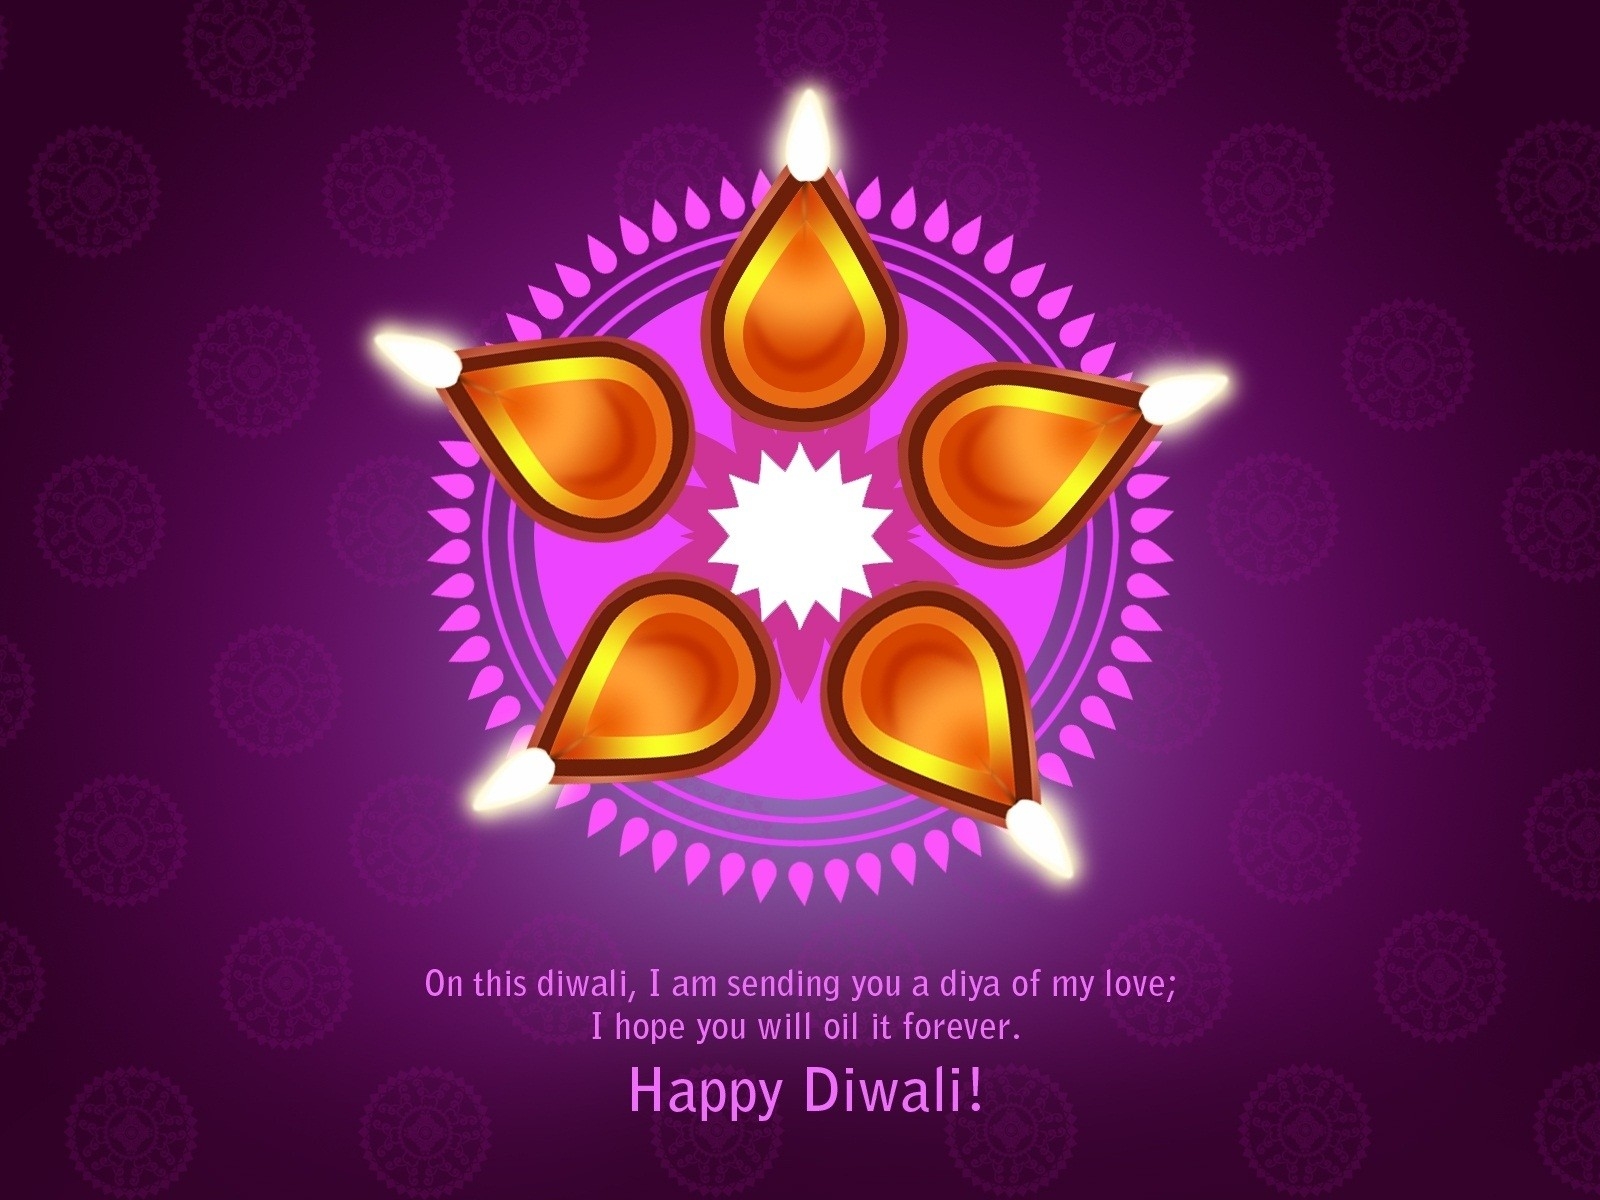 happy diwali 2017 quotes wishes hd wallpaper freshwidewallpapers